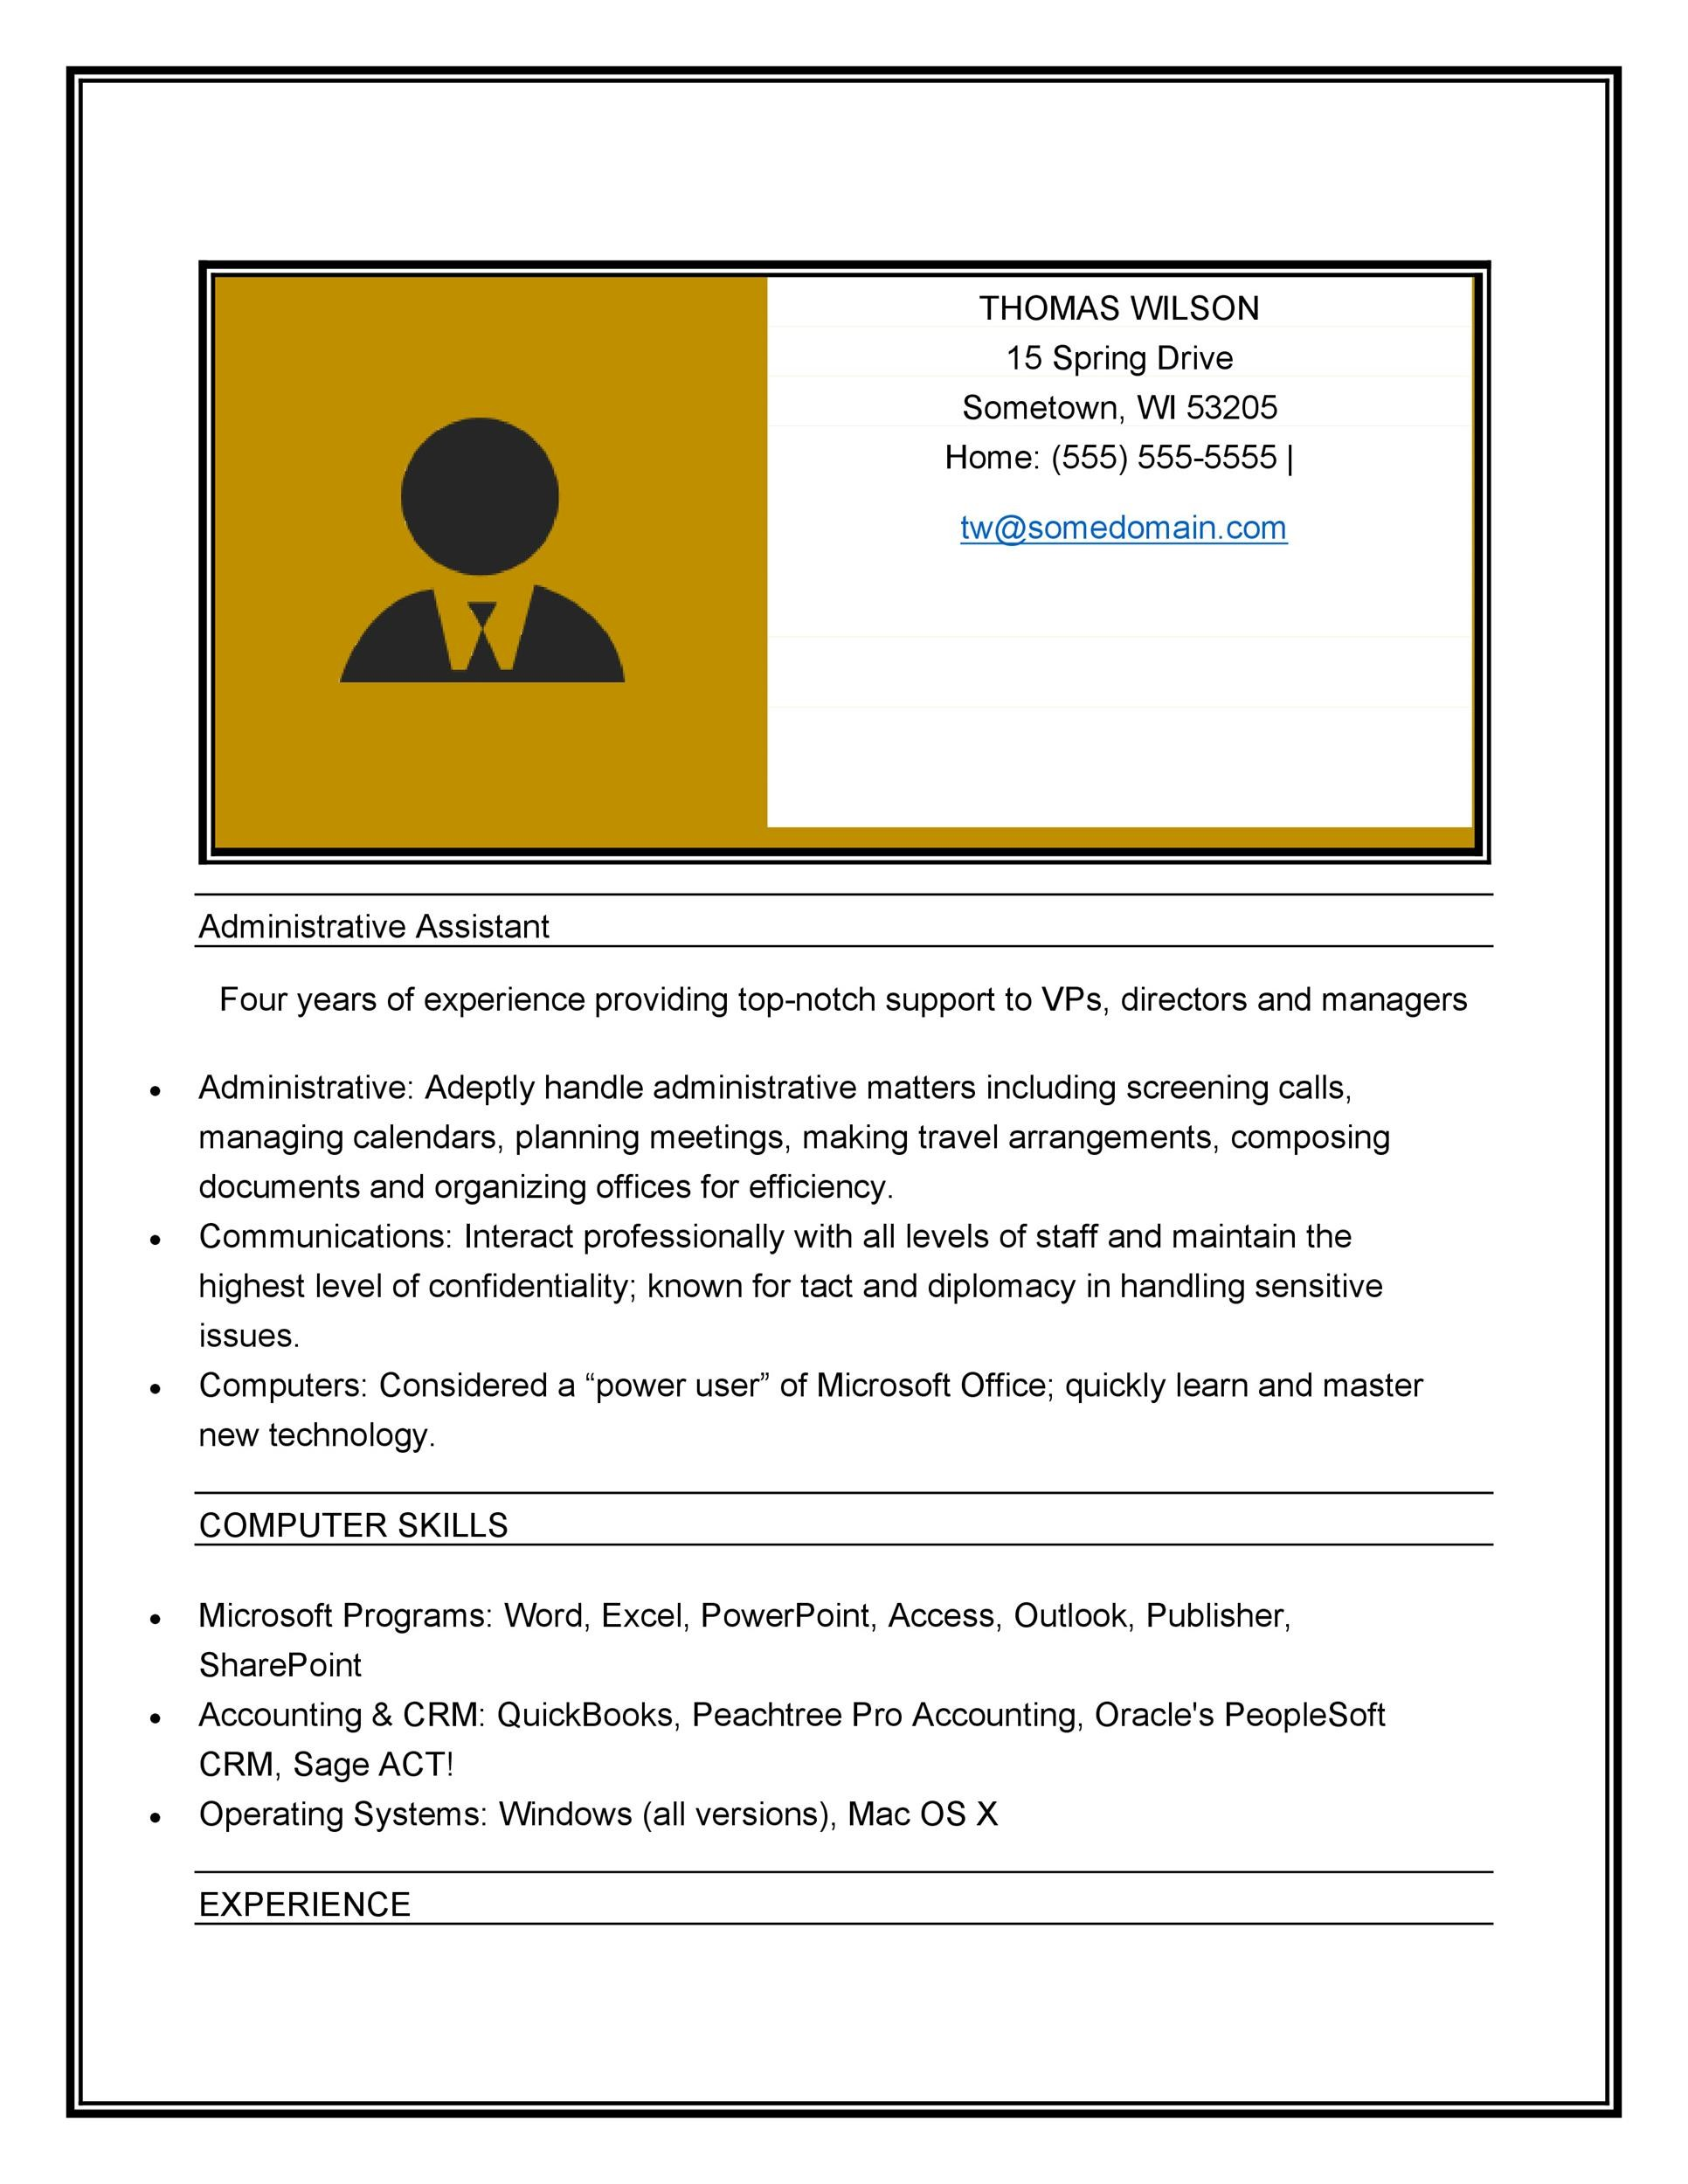 Free Administrative Assistant Resume Template 06